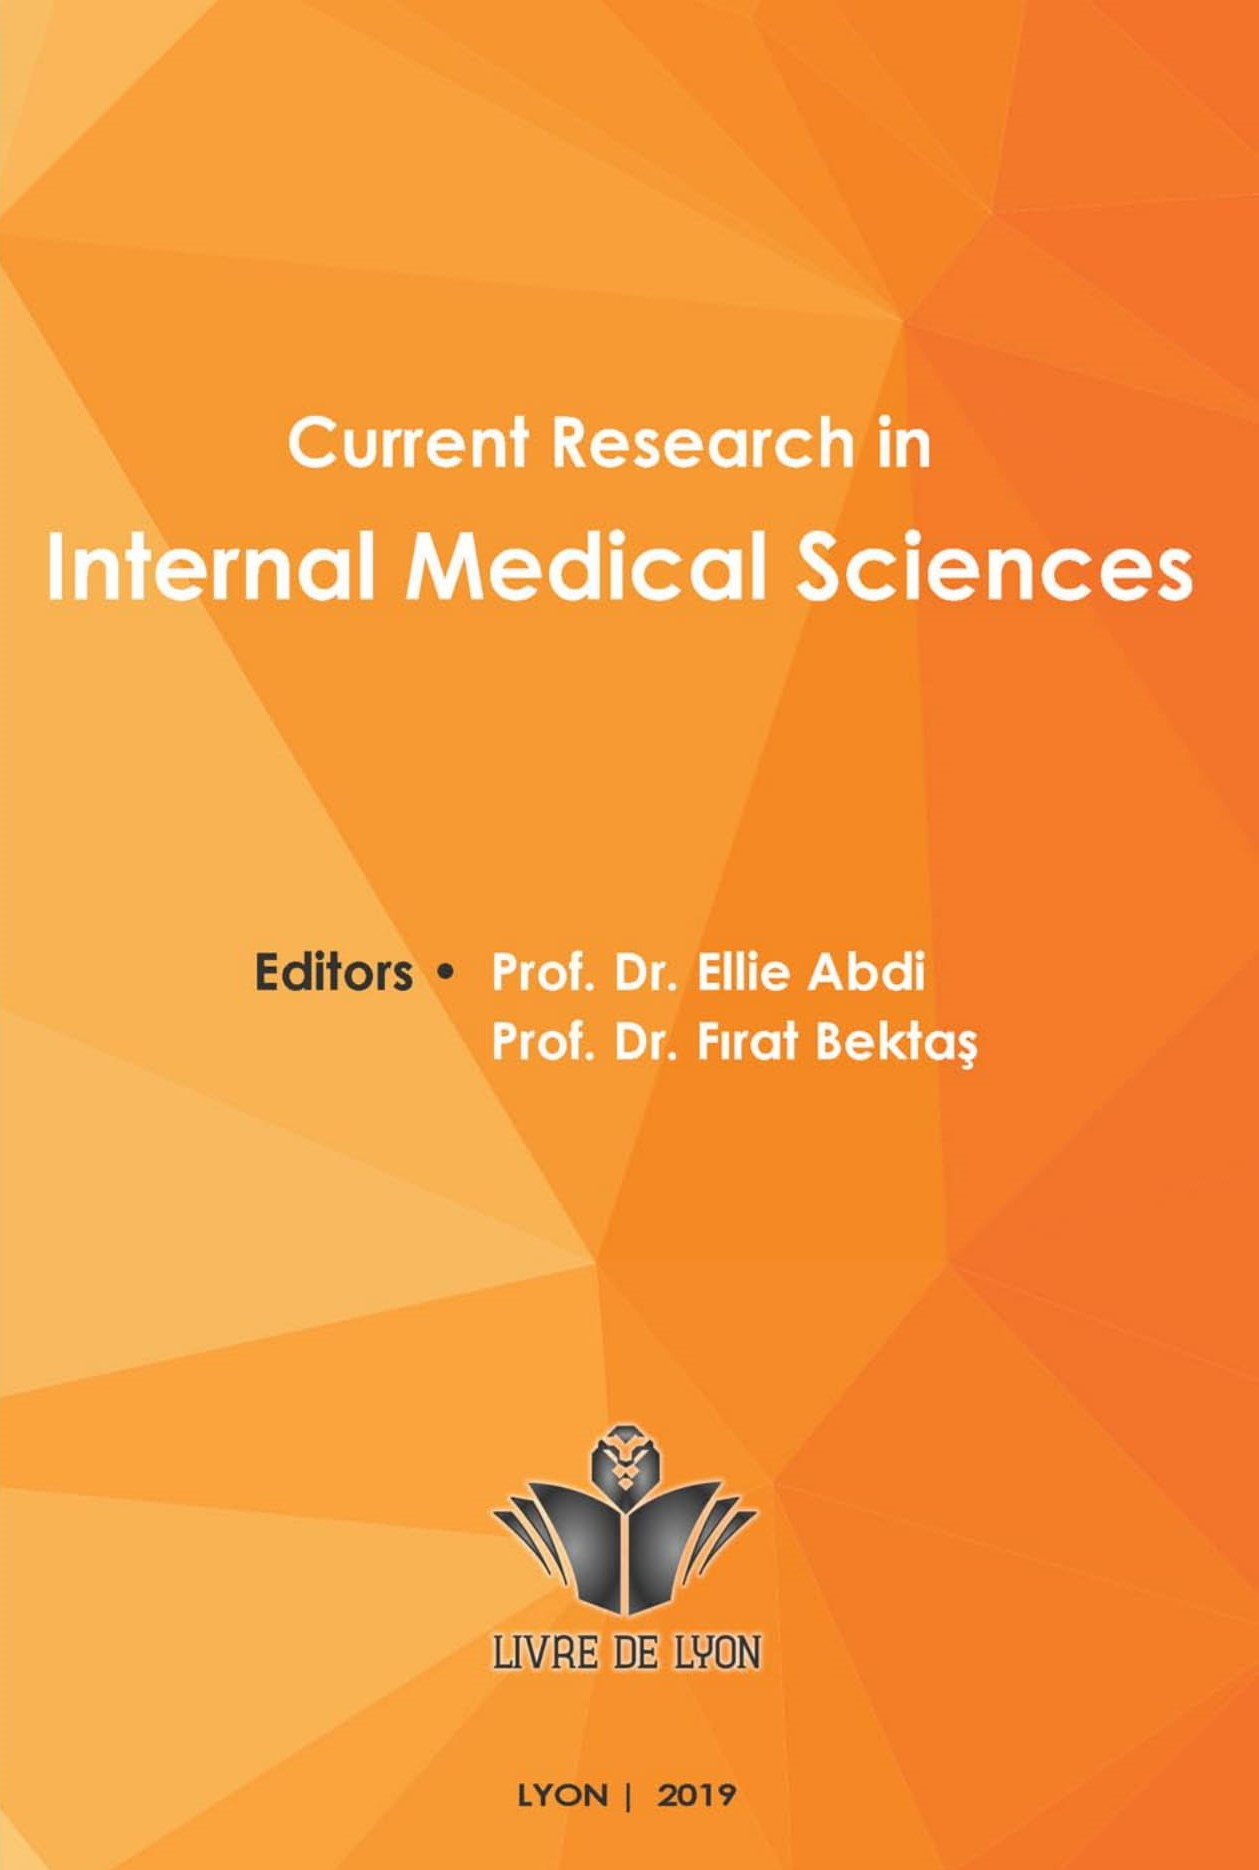 Current Research in Internal Medical Sciences